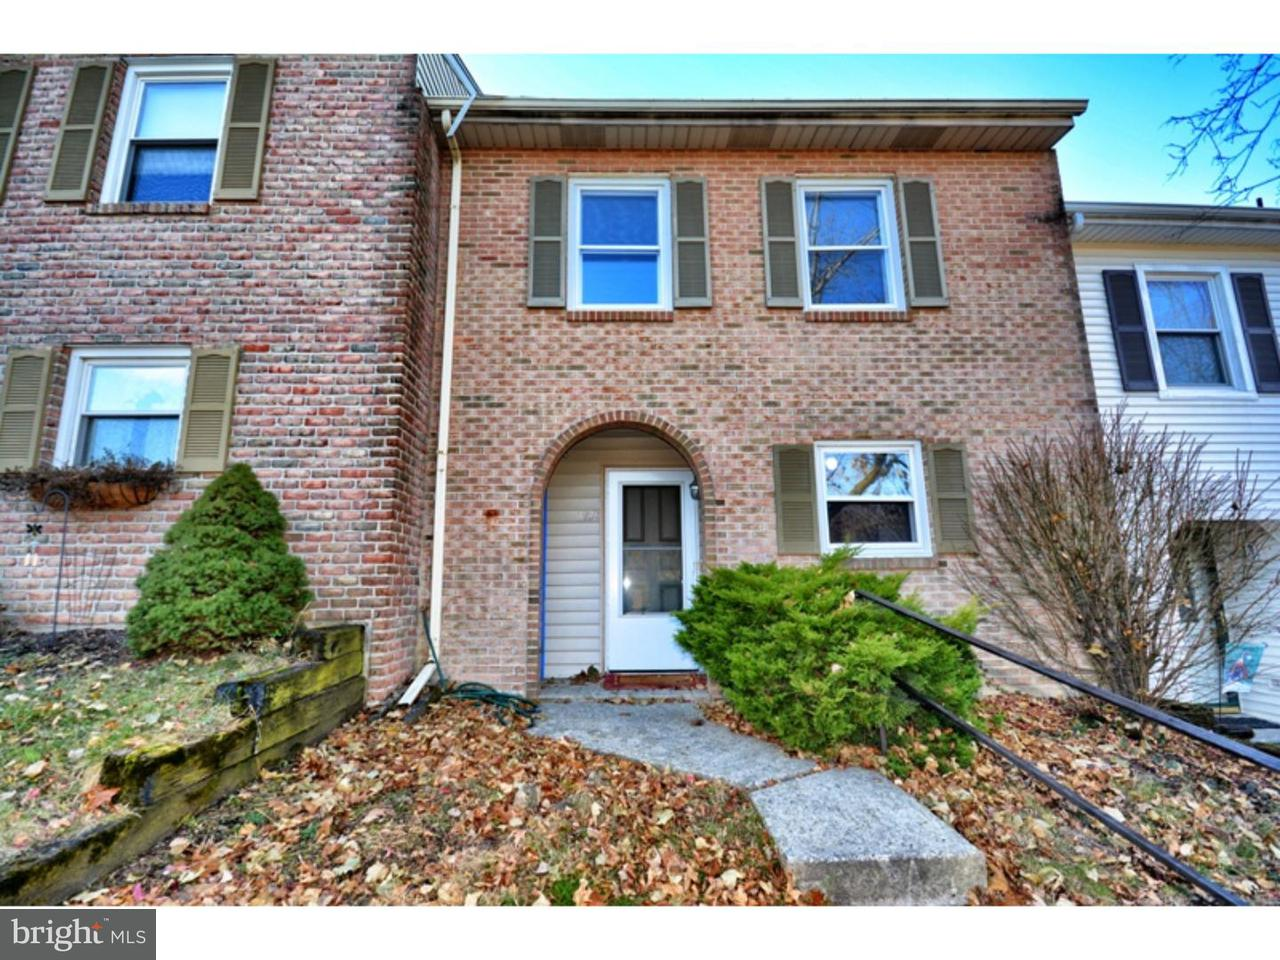 Townhouse for Sale at 1928 CRICKLEWOOD CV Fogelsville, Pennsylvania 18051 United States